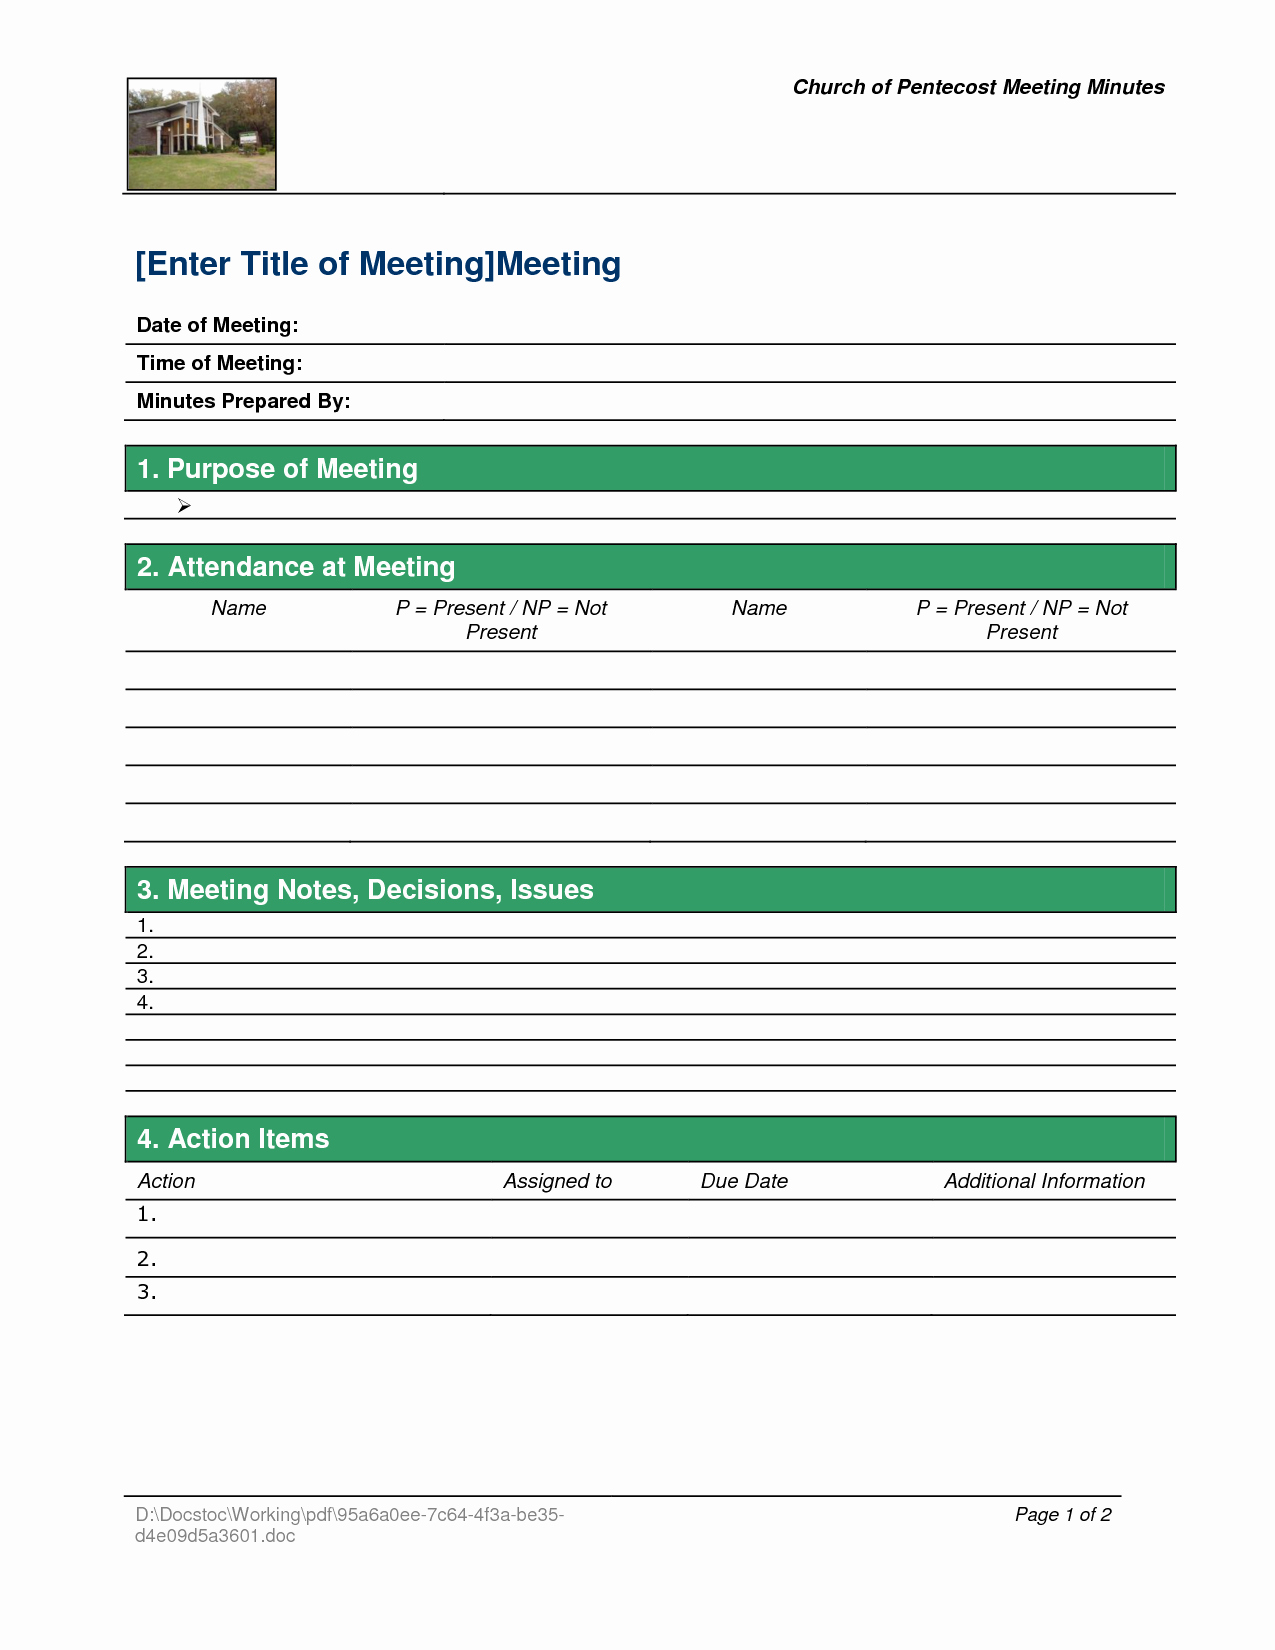 Church Business Meeting Minutes Template Unique Best S Of Pentacostal Church Conduct Meetings Free Church Meeting Minutes Template